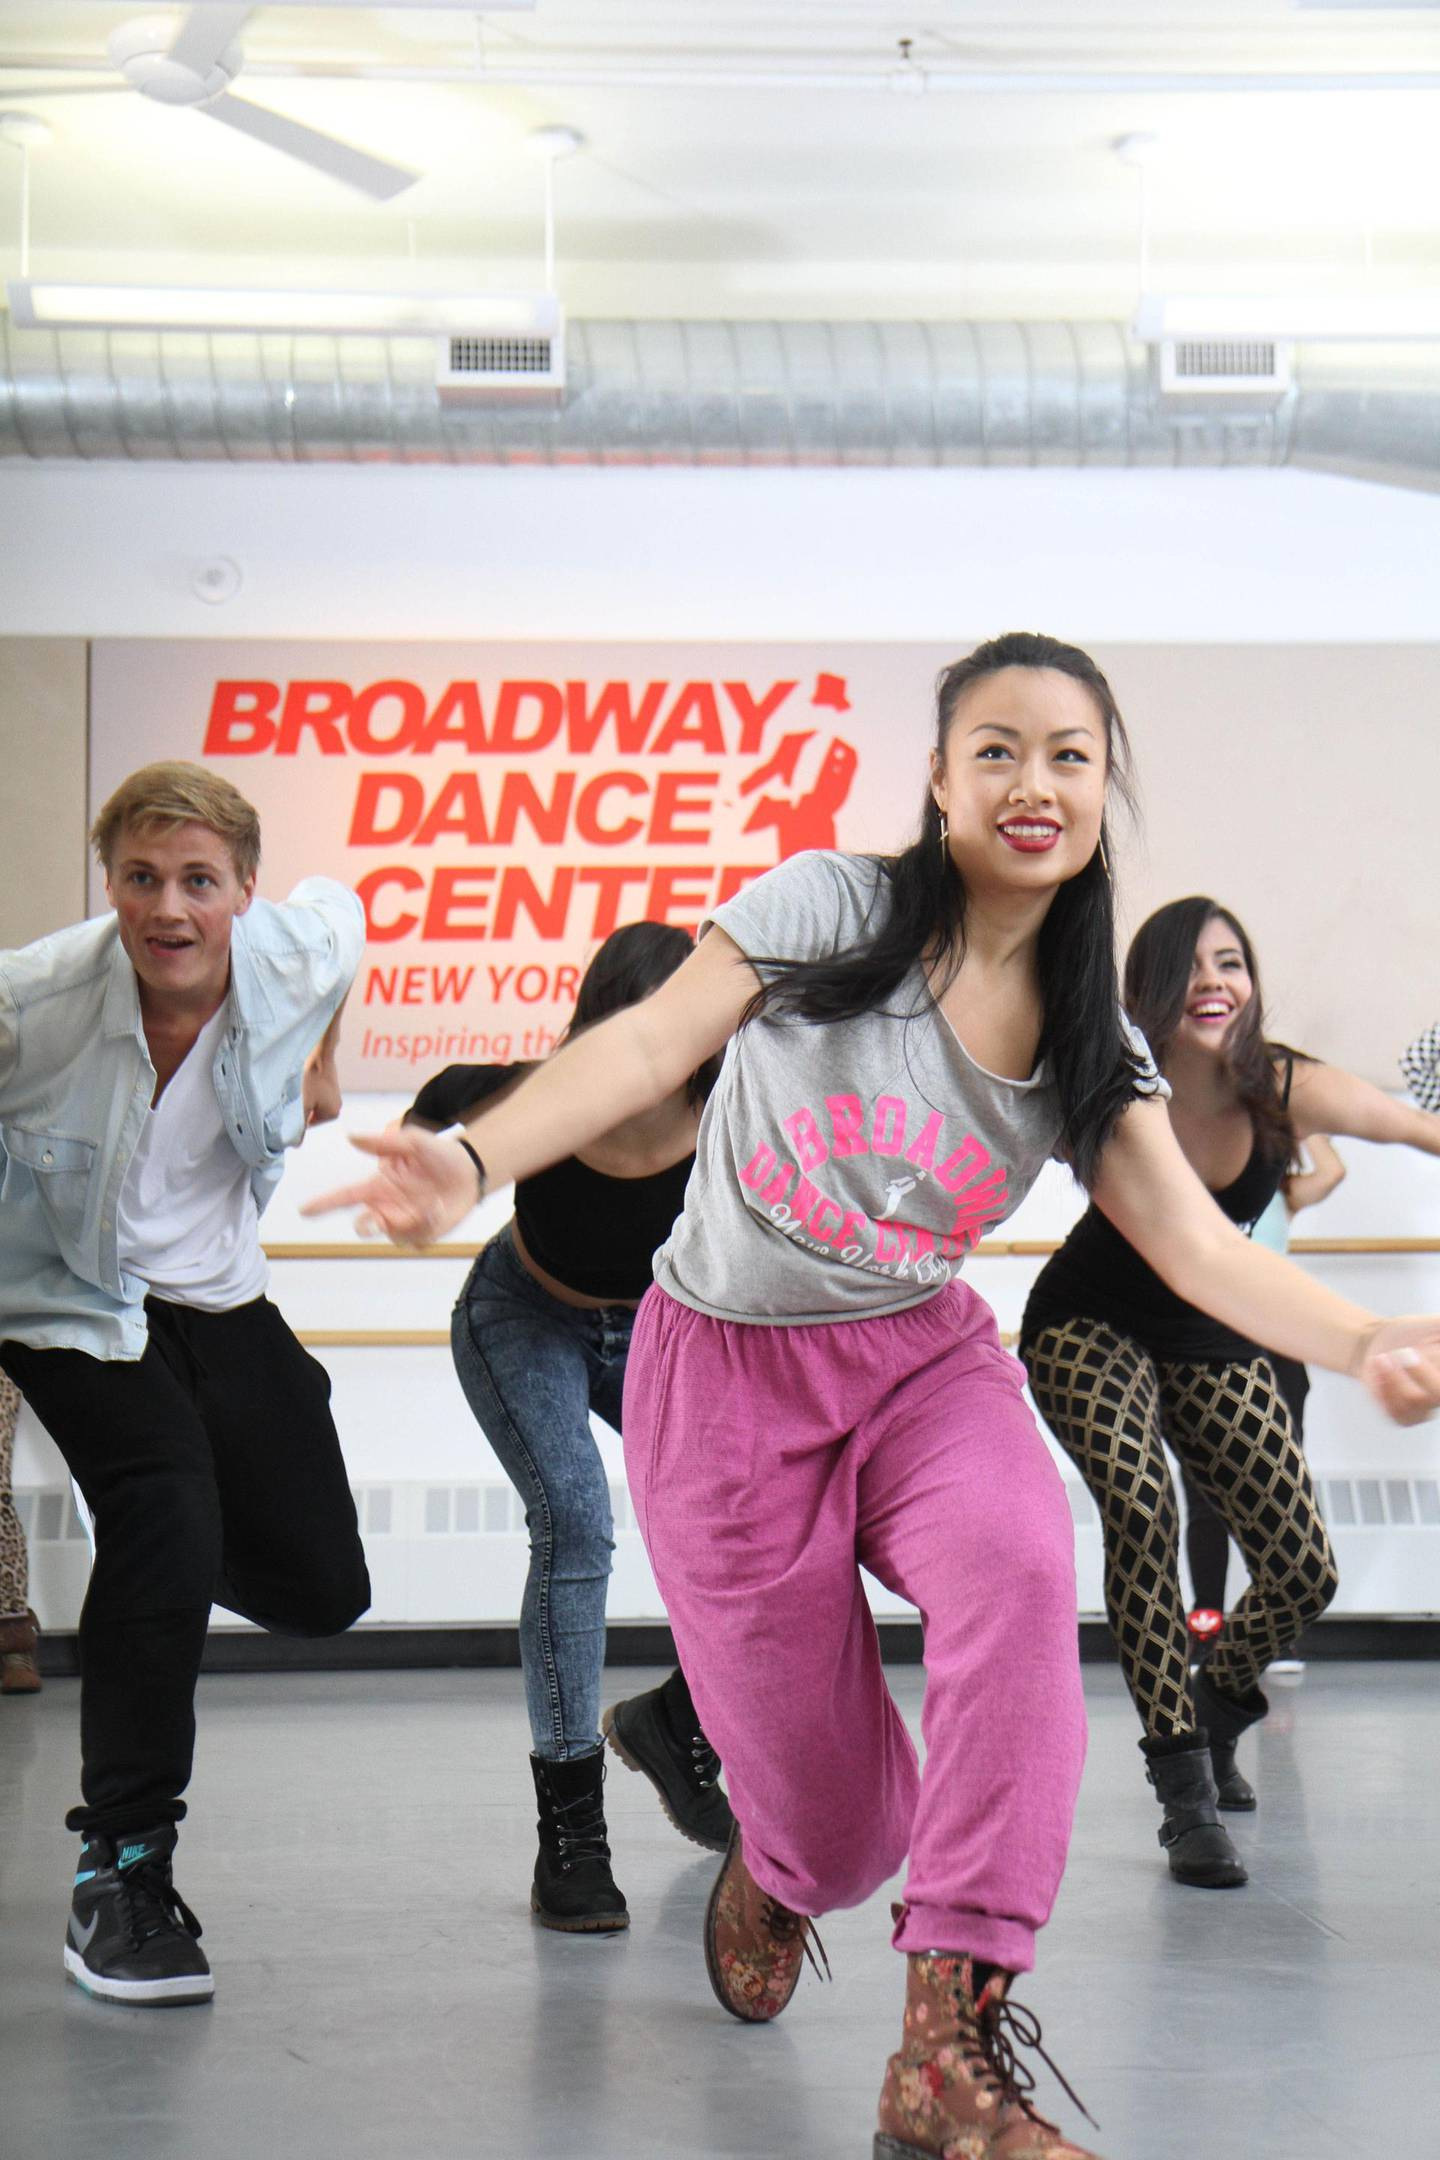 Broadway Dance Center. Photo by Reese Snow